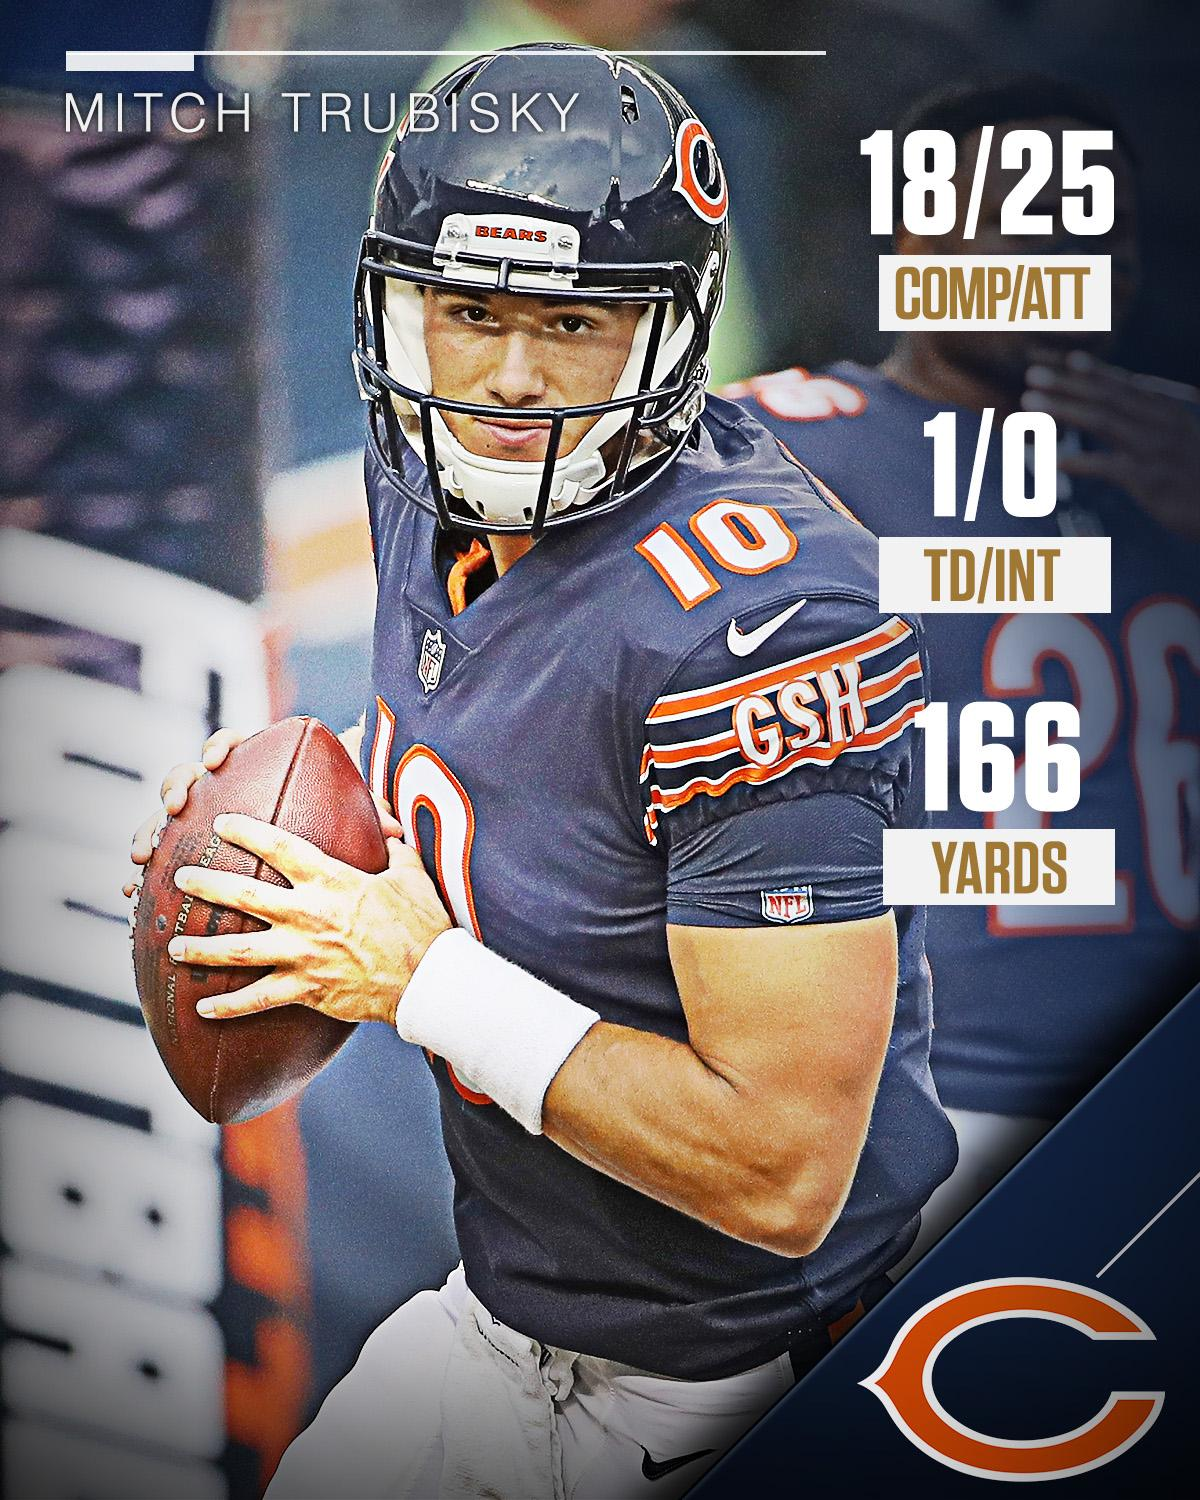 The Chicago rookie brought the heat to his NFL preseason debut. https://t.co/ODknO8qnQW